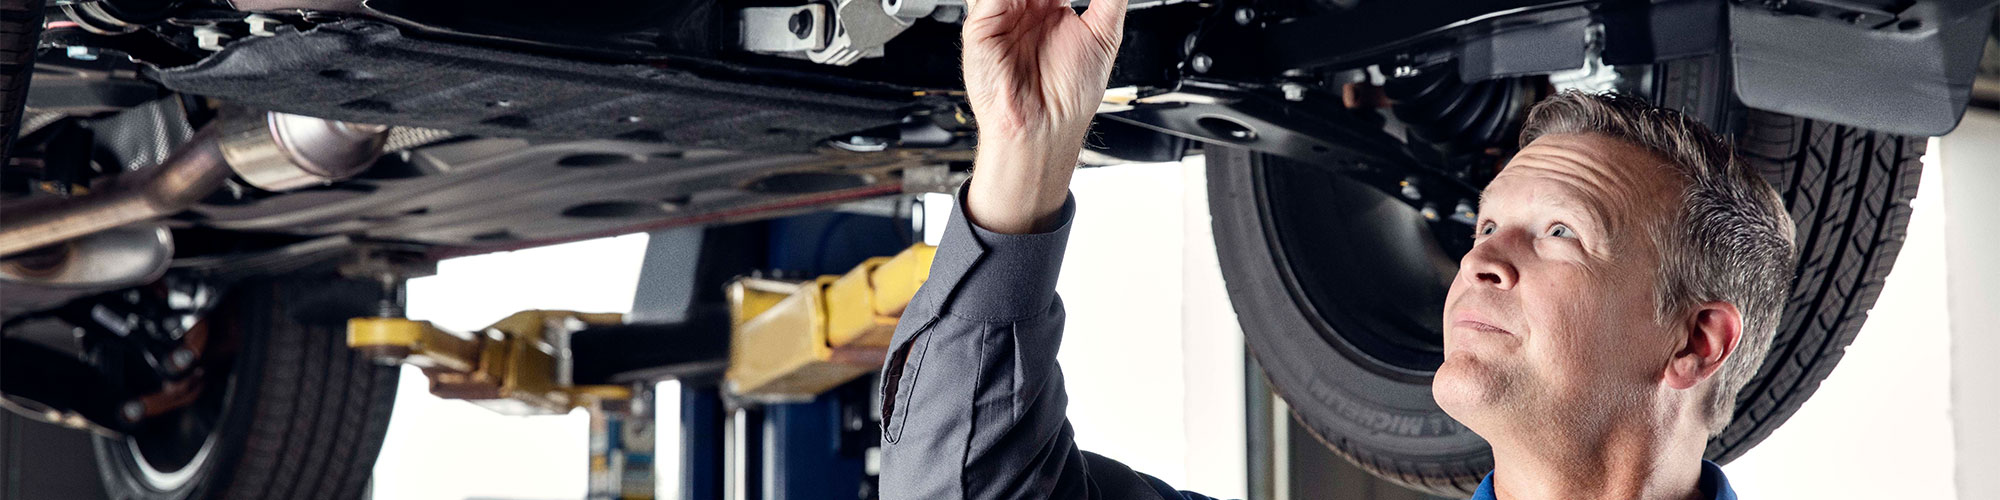 Why Change Your Oil? | Boulevard Ford, My Delaware Ford Dealer